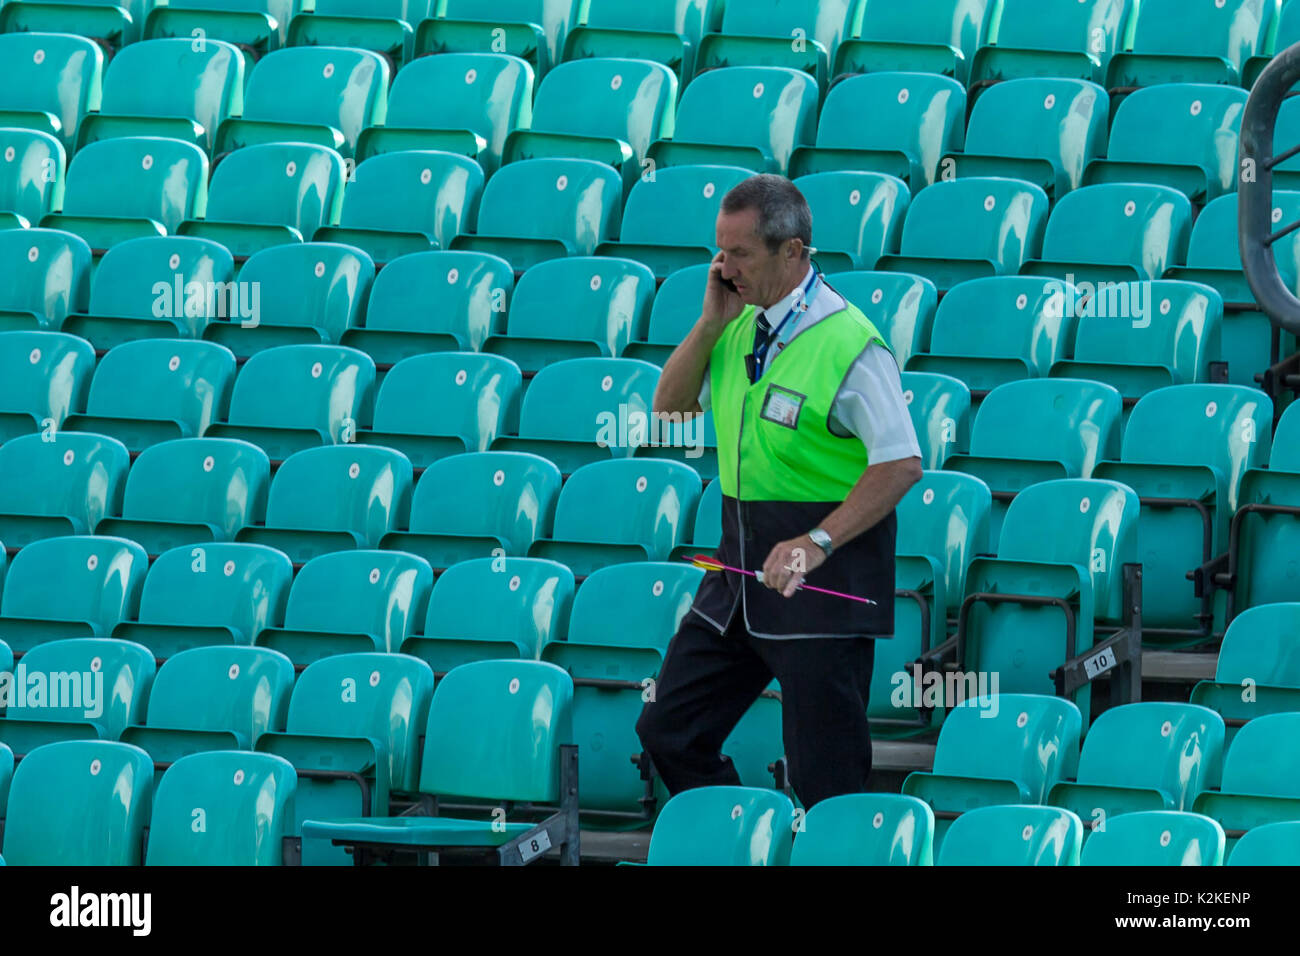 London, UK. 31st Aug, 2017. An arrow which was shot onto the pitch is carried by a steward at the oval and the crowd is evacuated. David Rowe/ Alamy Live News - Stock Image